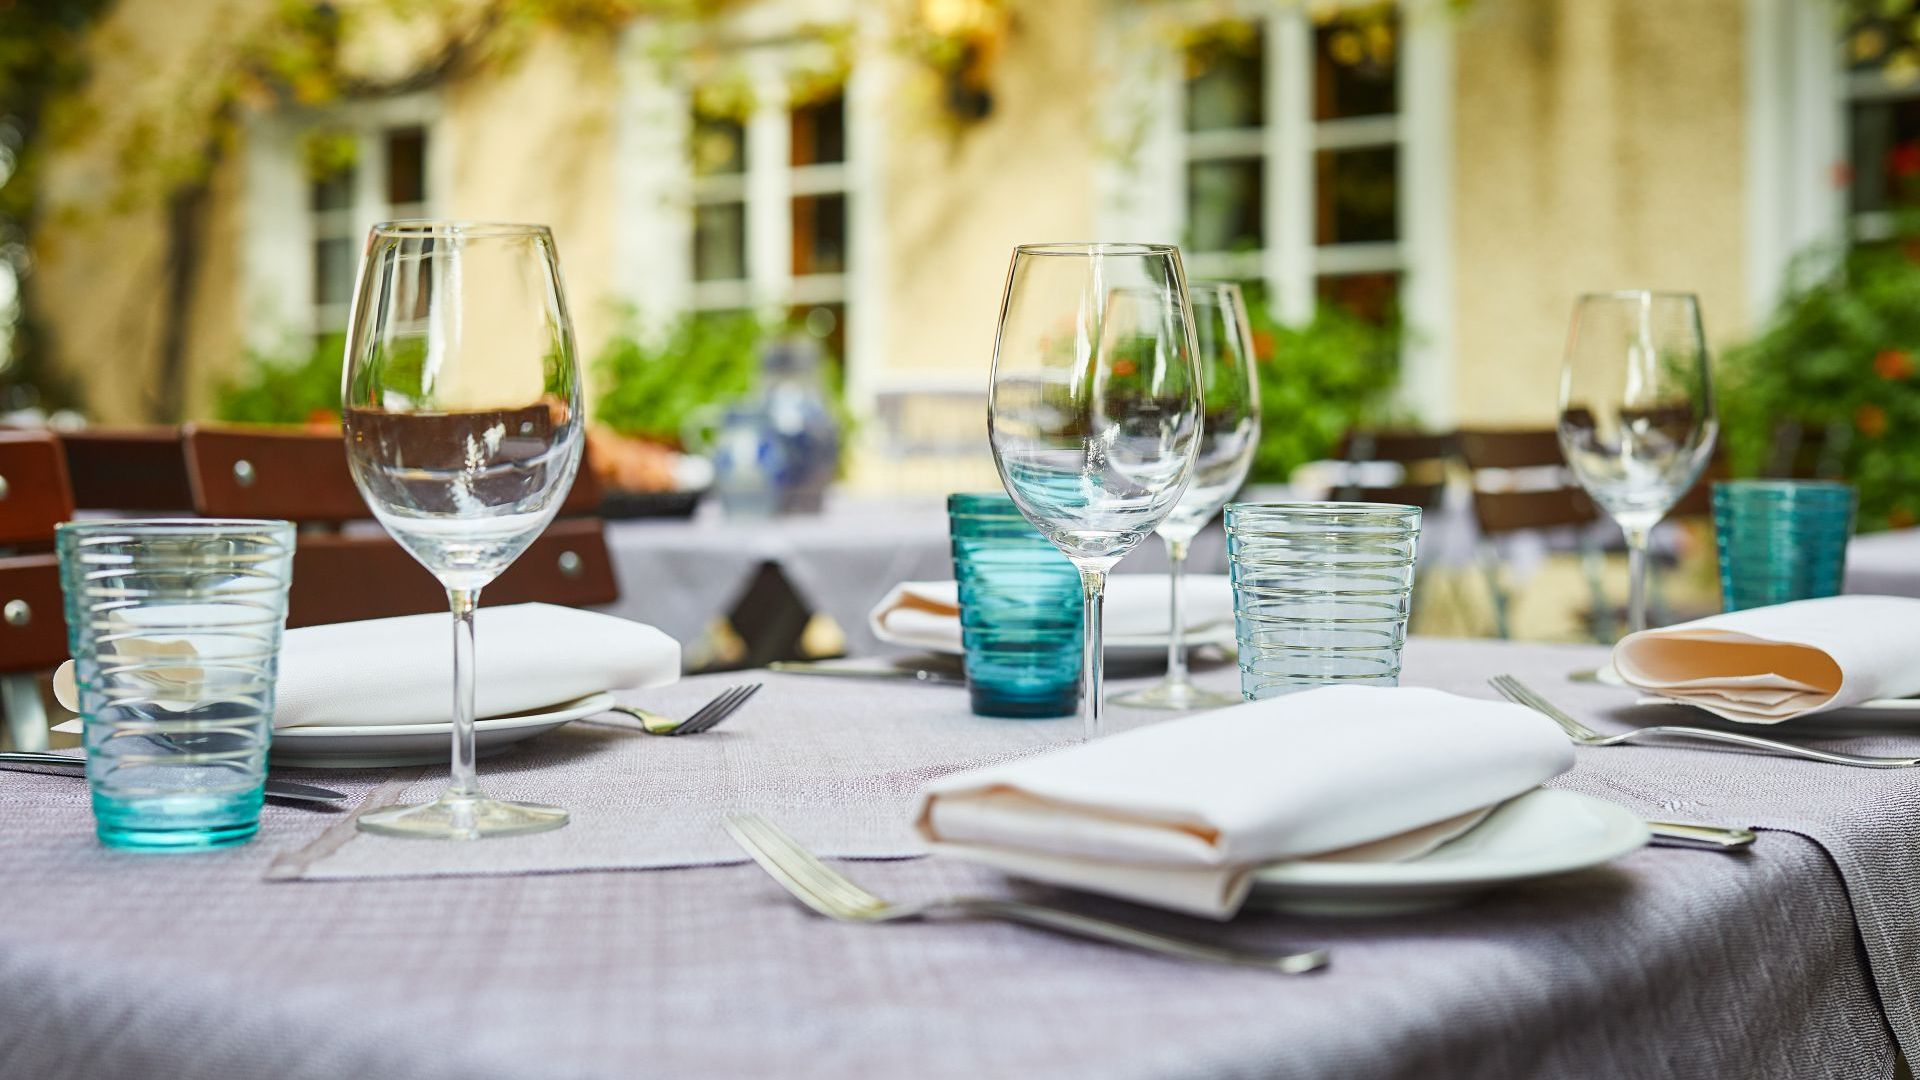 Classik-Hotel-Collection-Munich-Martinshof-Restaurant-Lunch-Day-Outside-Detail-01-Web